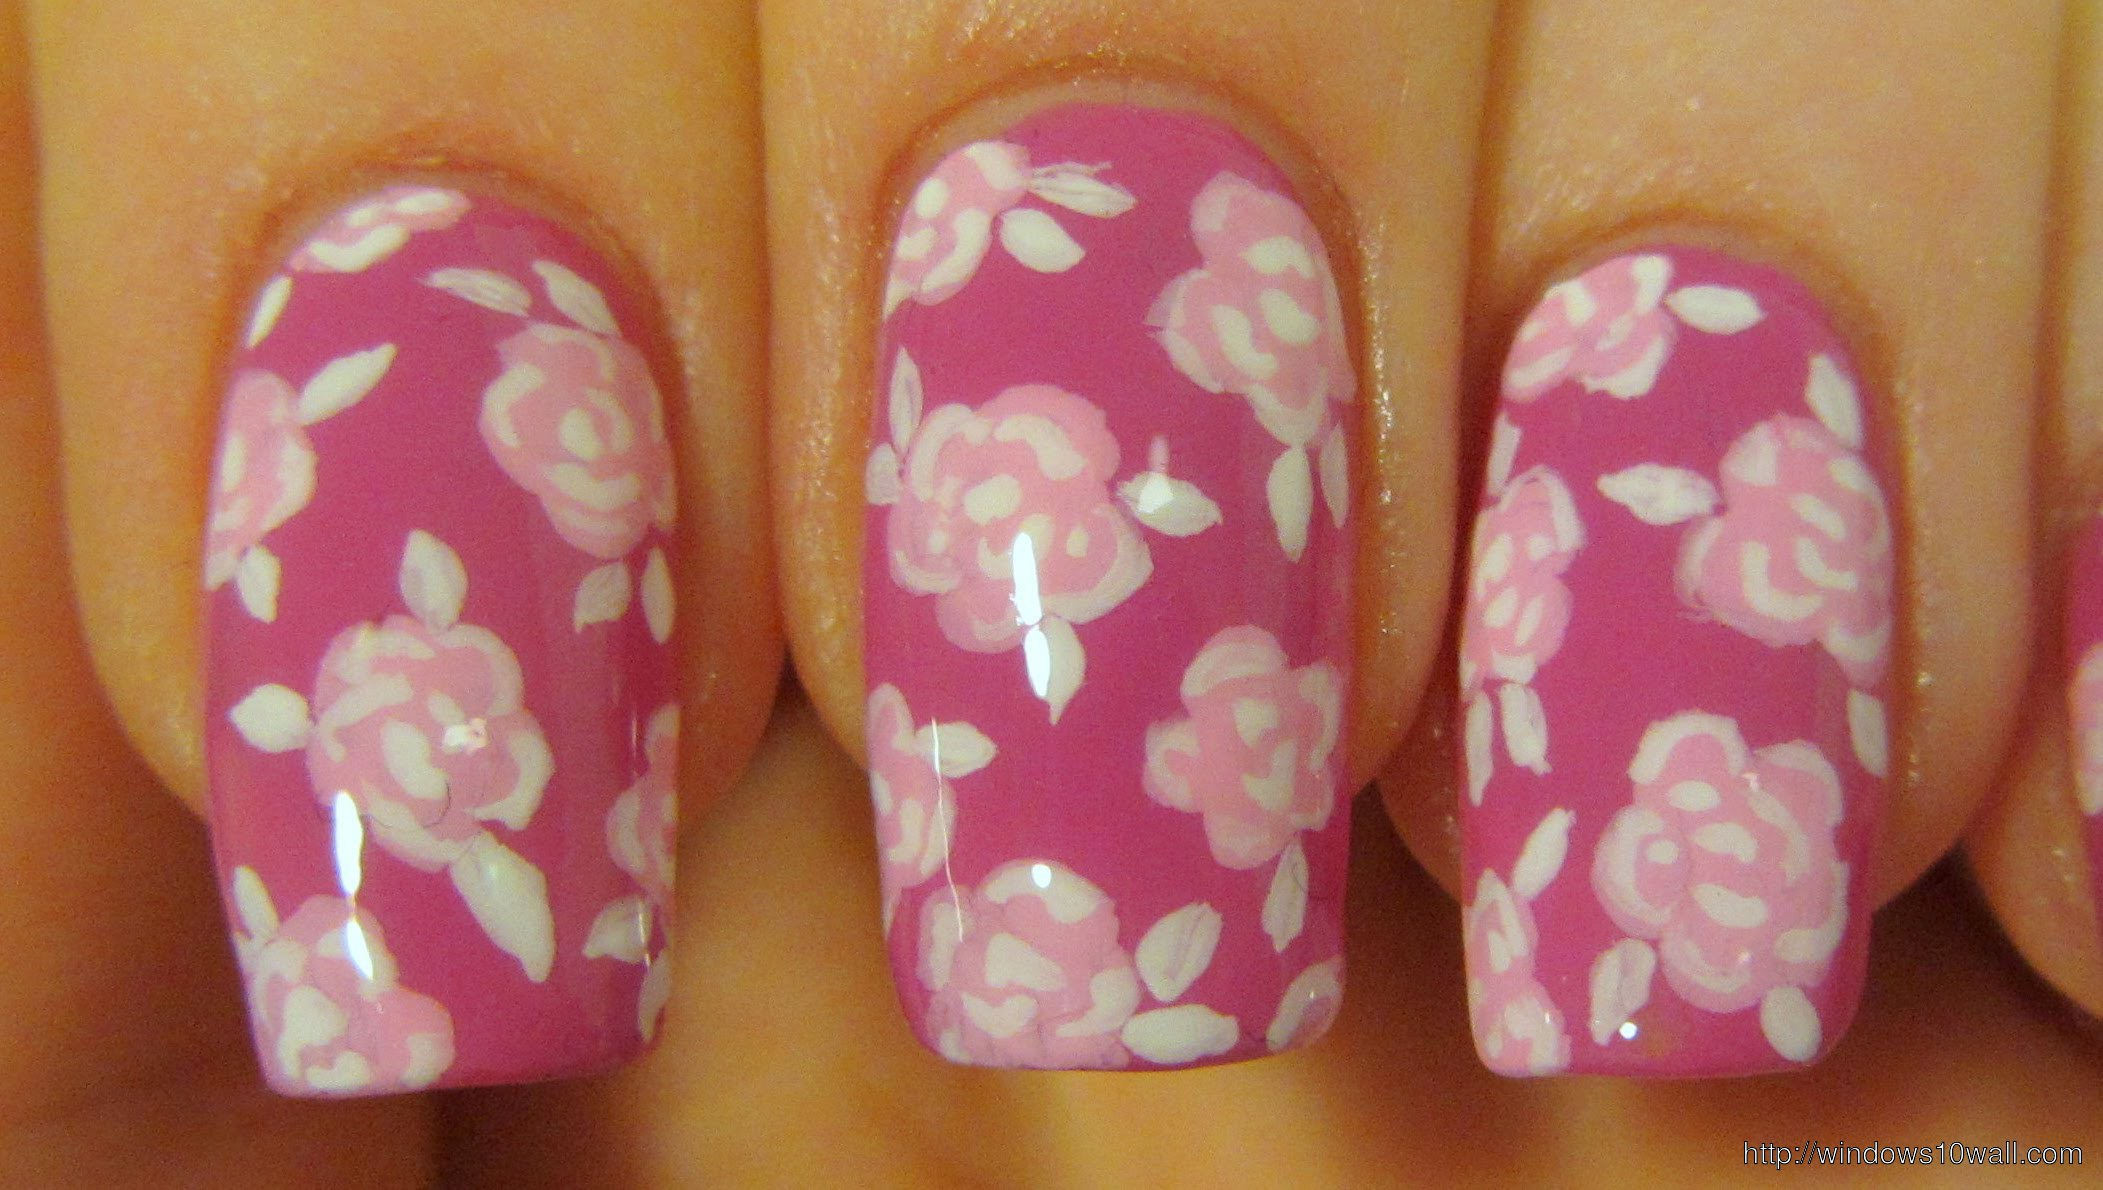 pink-nail-art-designs-with-flowers-background-wallpaper